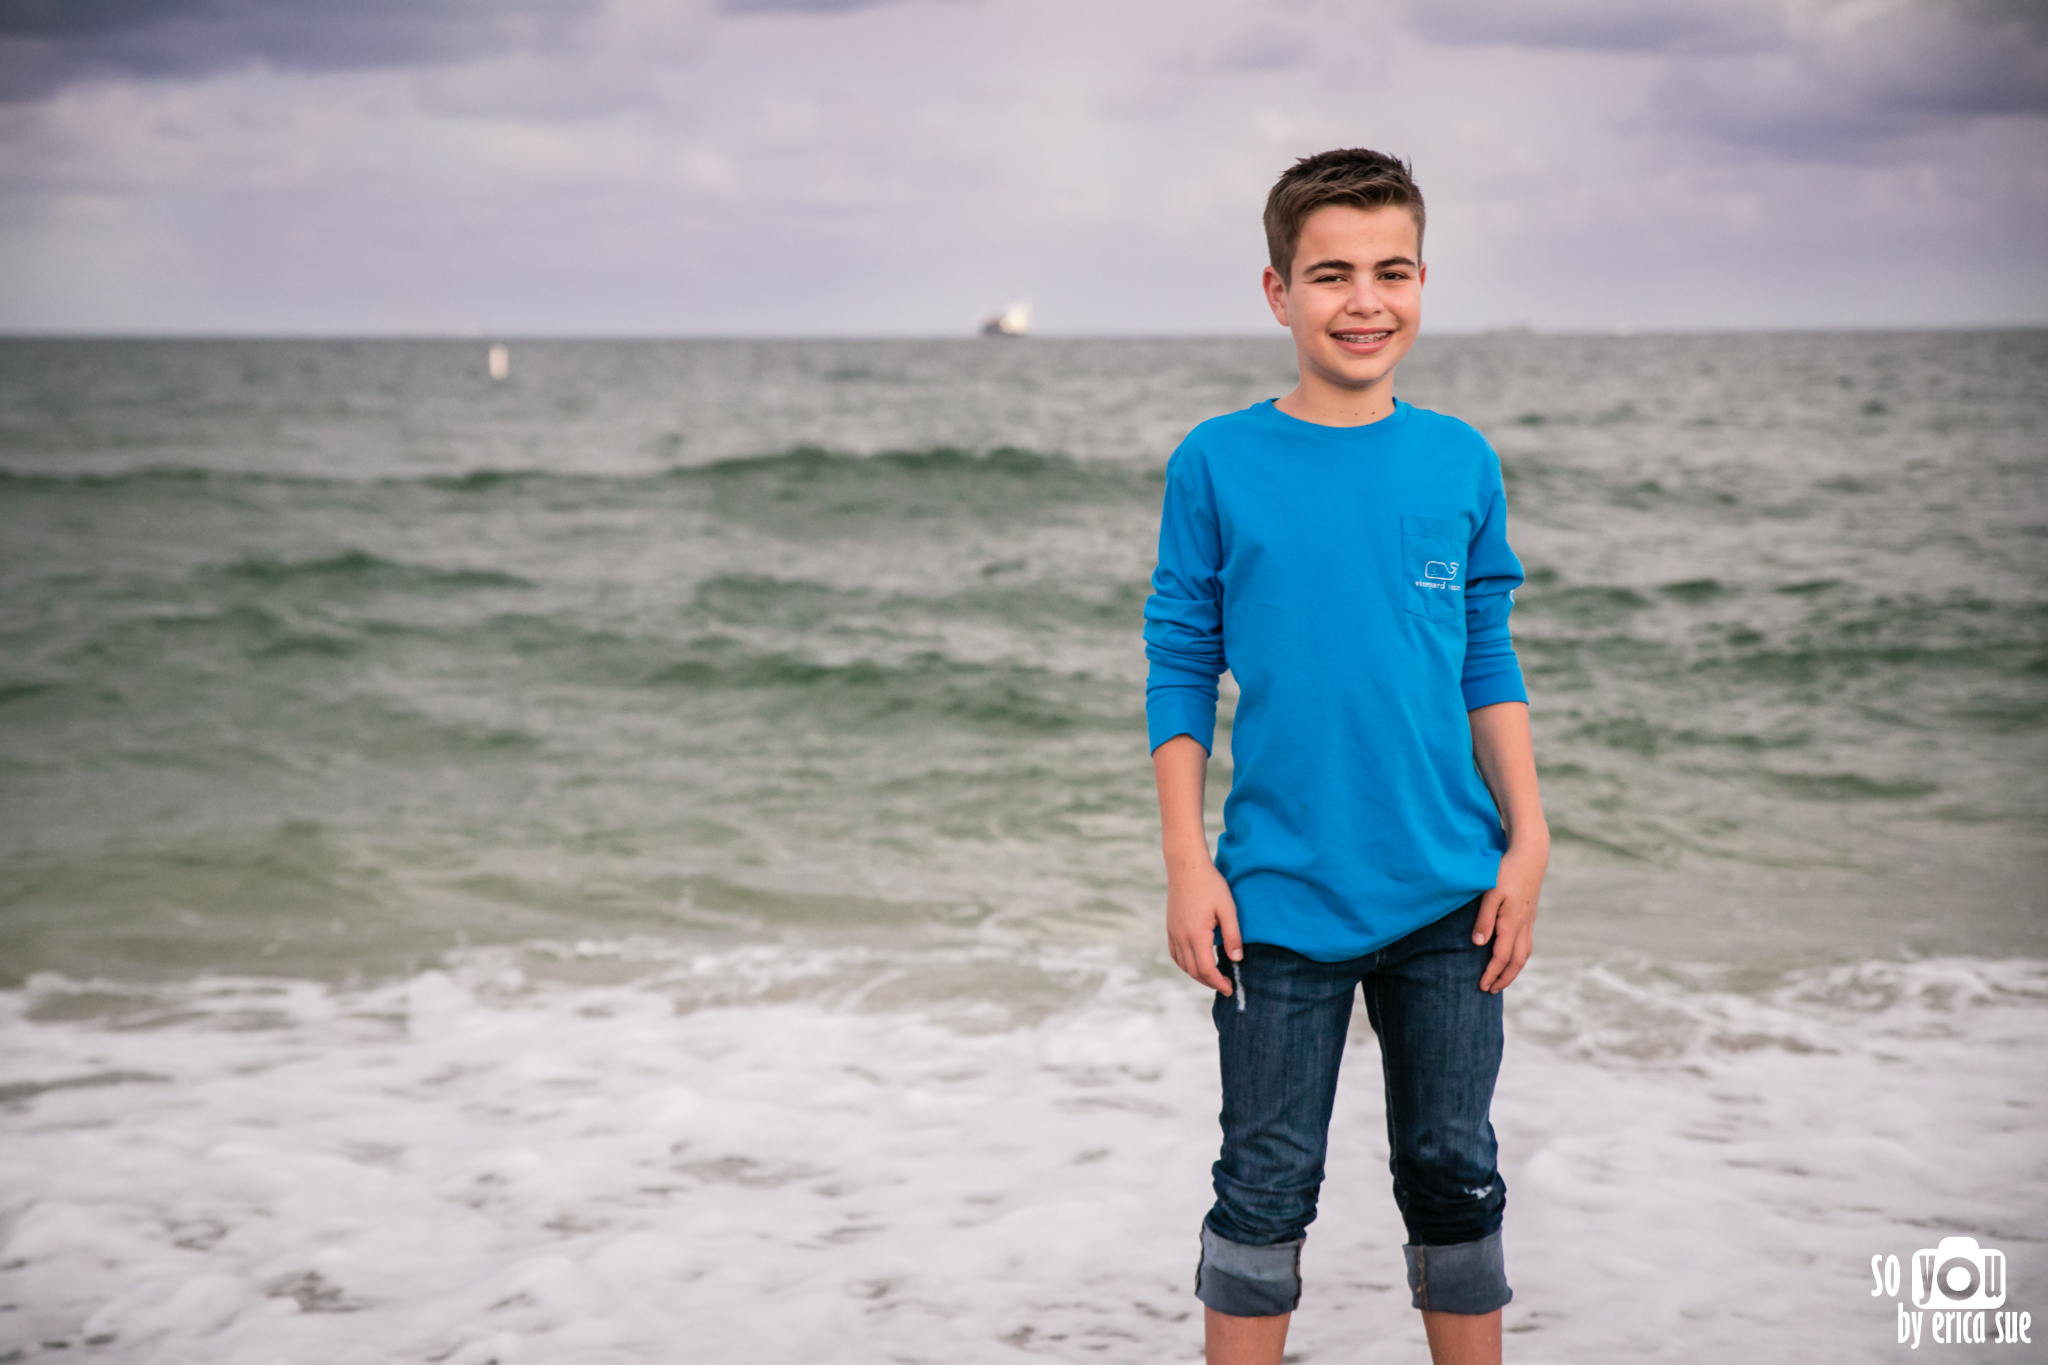 bar-mitzvay-pre-shoot-family-photography-so-you-by-erica-sue-ft-lauderdale-fl-florida-beach-9385.jpg